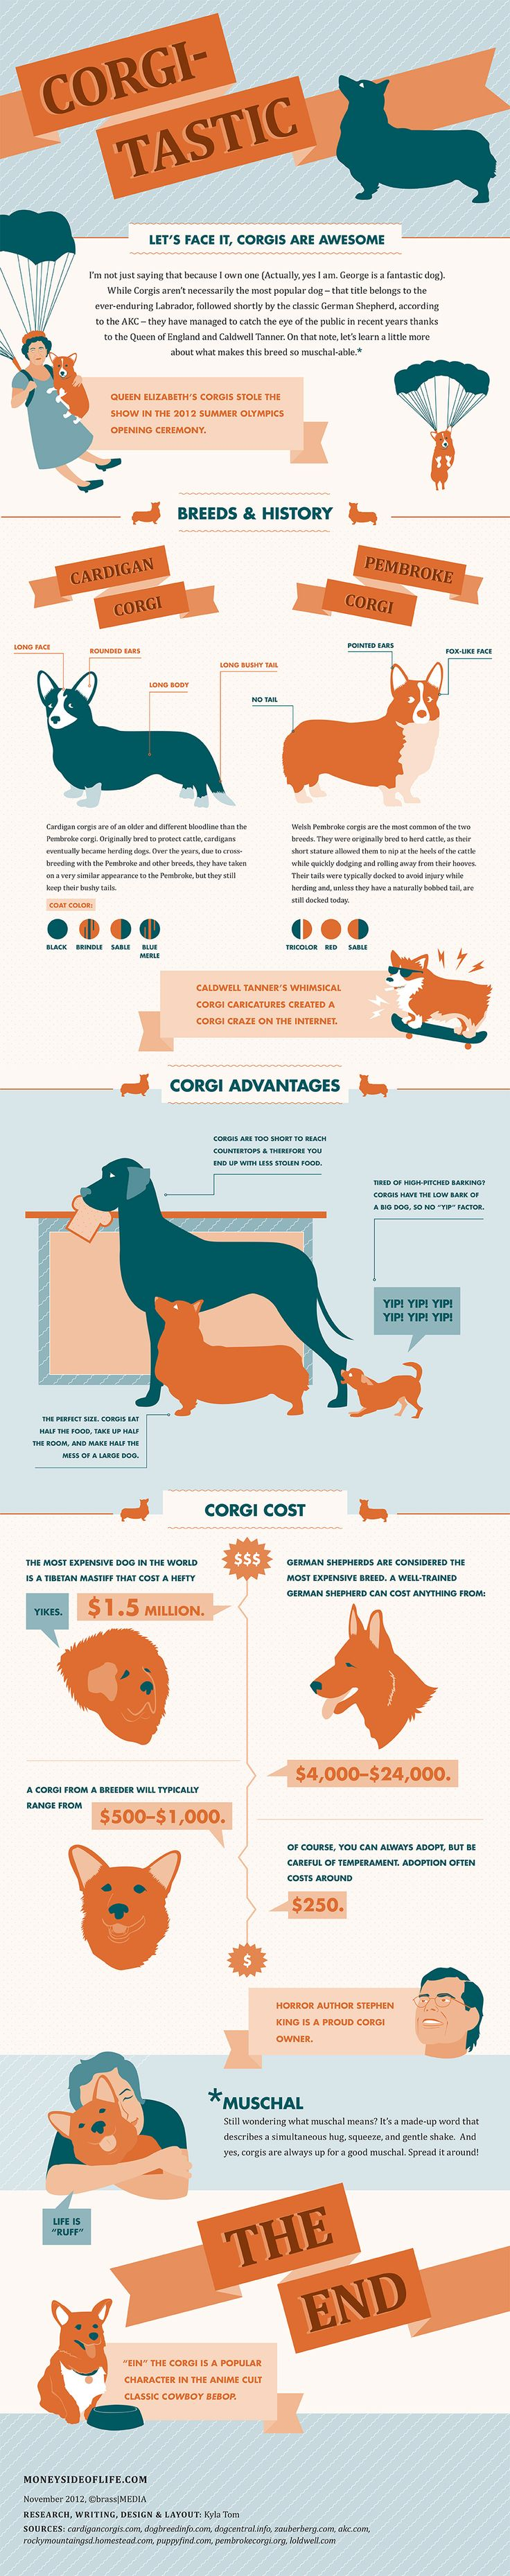 Over the past few years, corgis have risen up the pop culture ladder. Let's take a moment to learn more about the breed.